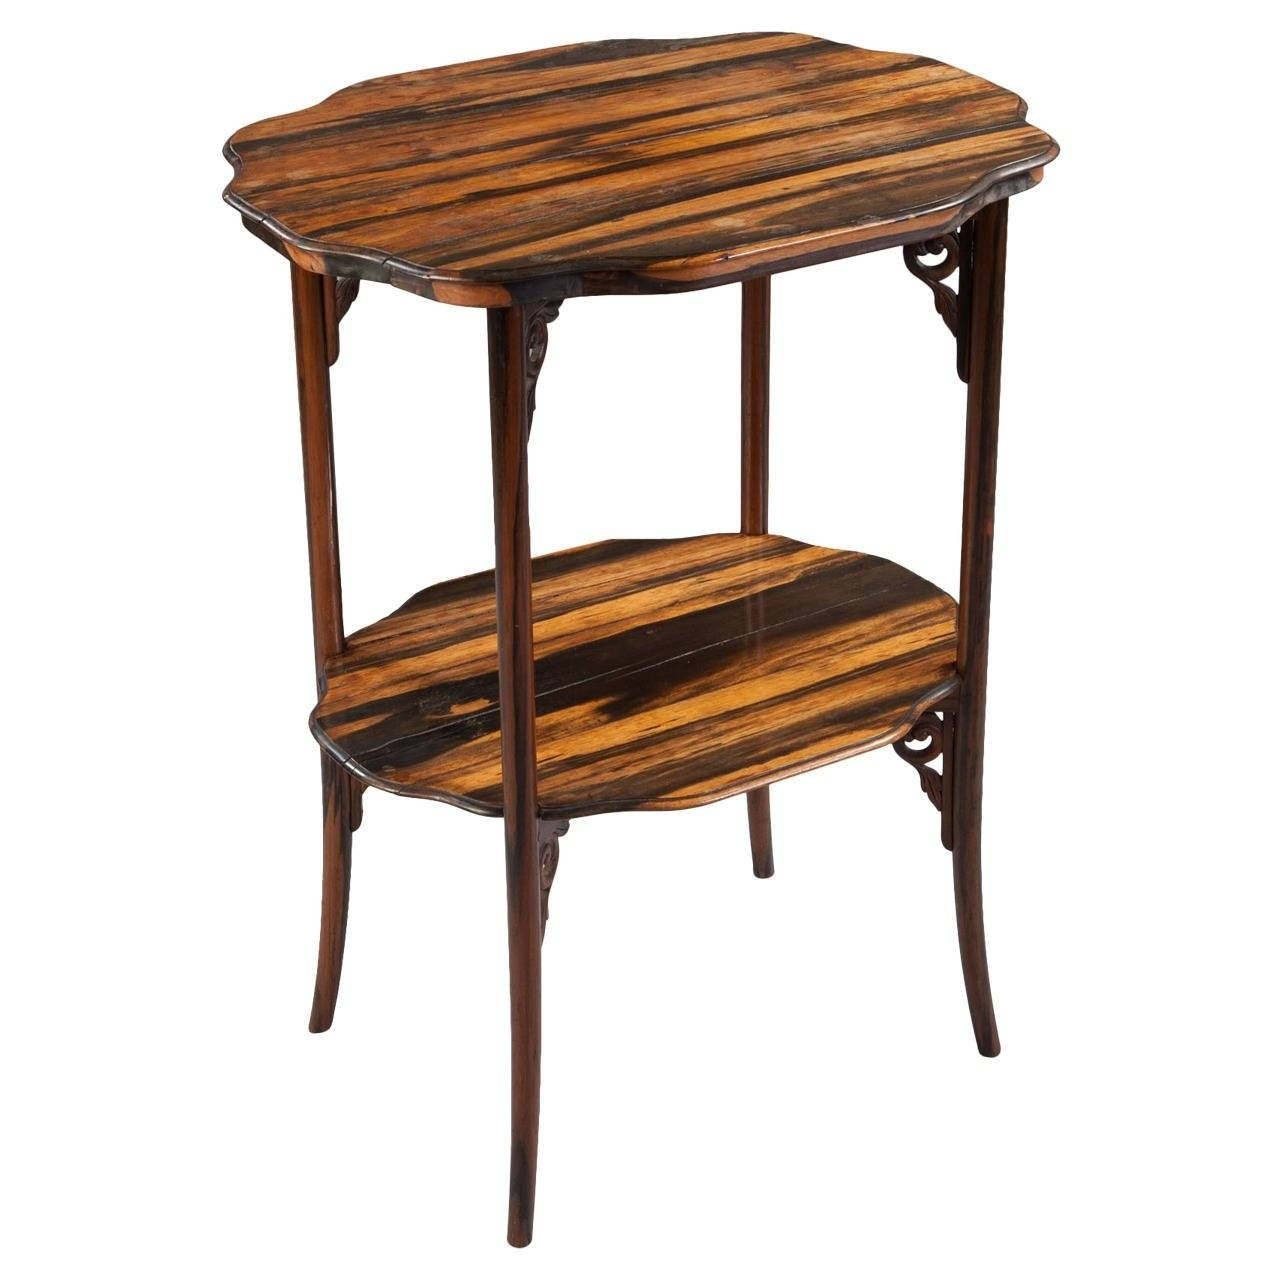 Calamander Wood Folding Campaign Table For Sale At 1Stdibs pertaining to Campaign Coffee Tables (Image 1 of 30)